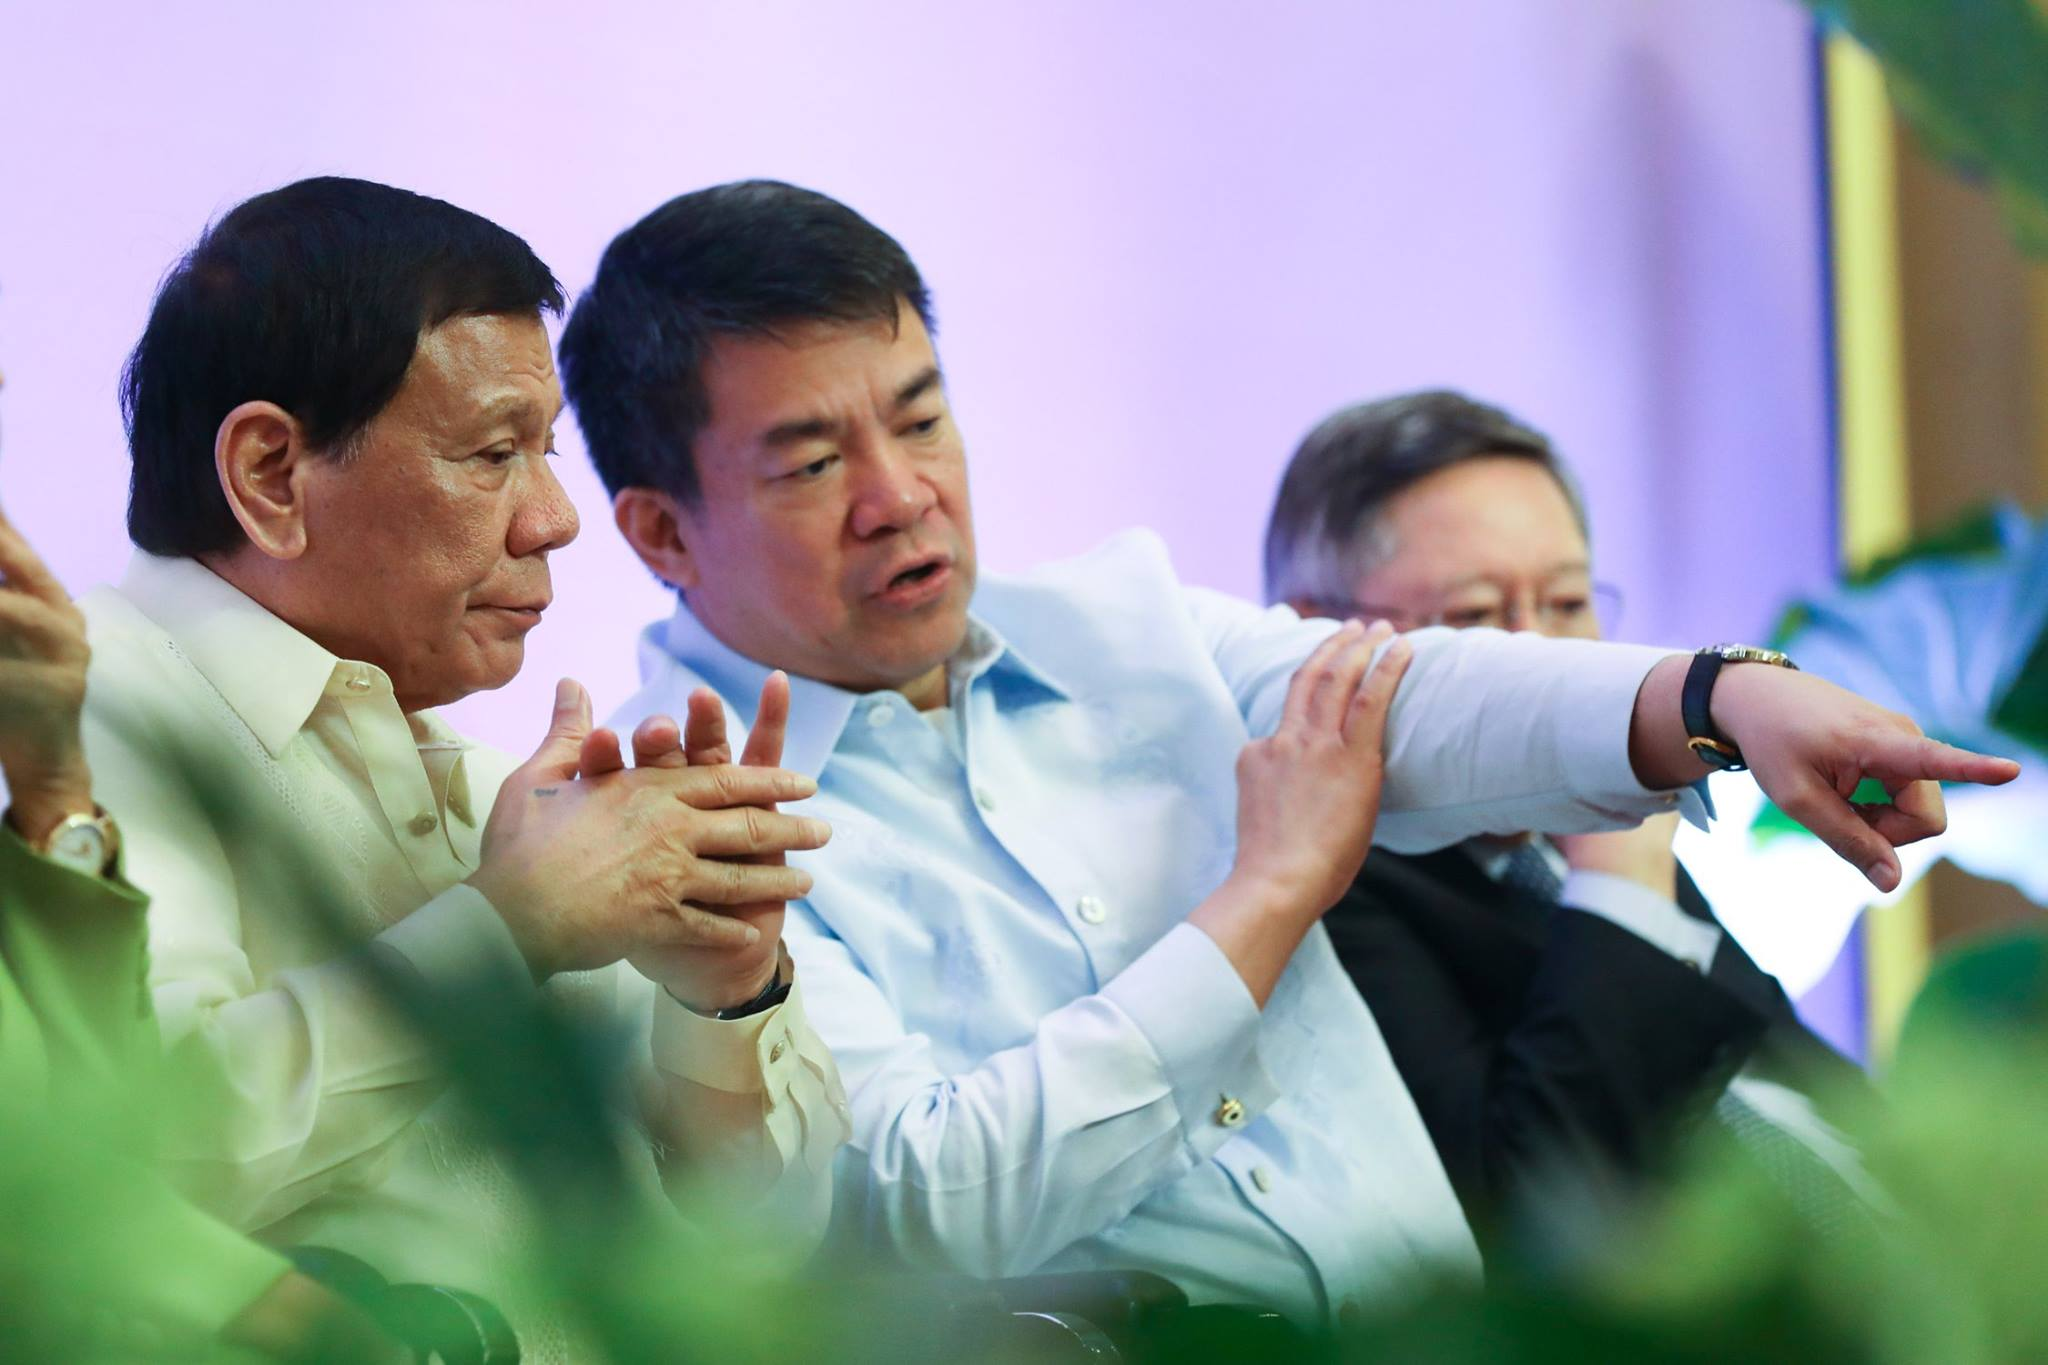 The statement of Pimentel came after Malacañang denounced the reported move of China to name at least five undersea features in the Philippine Rise. (Photo: Senate President Koko Pimentel/Facebook)